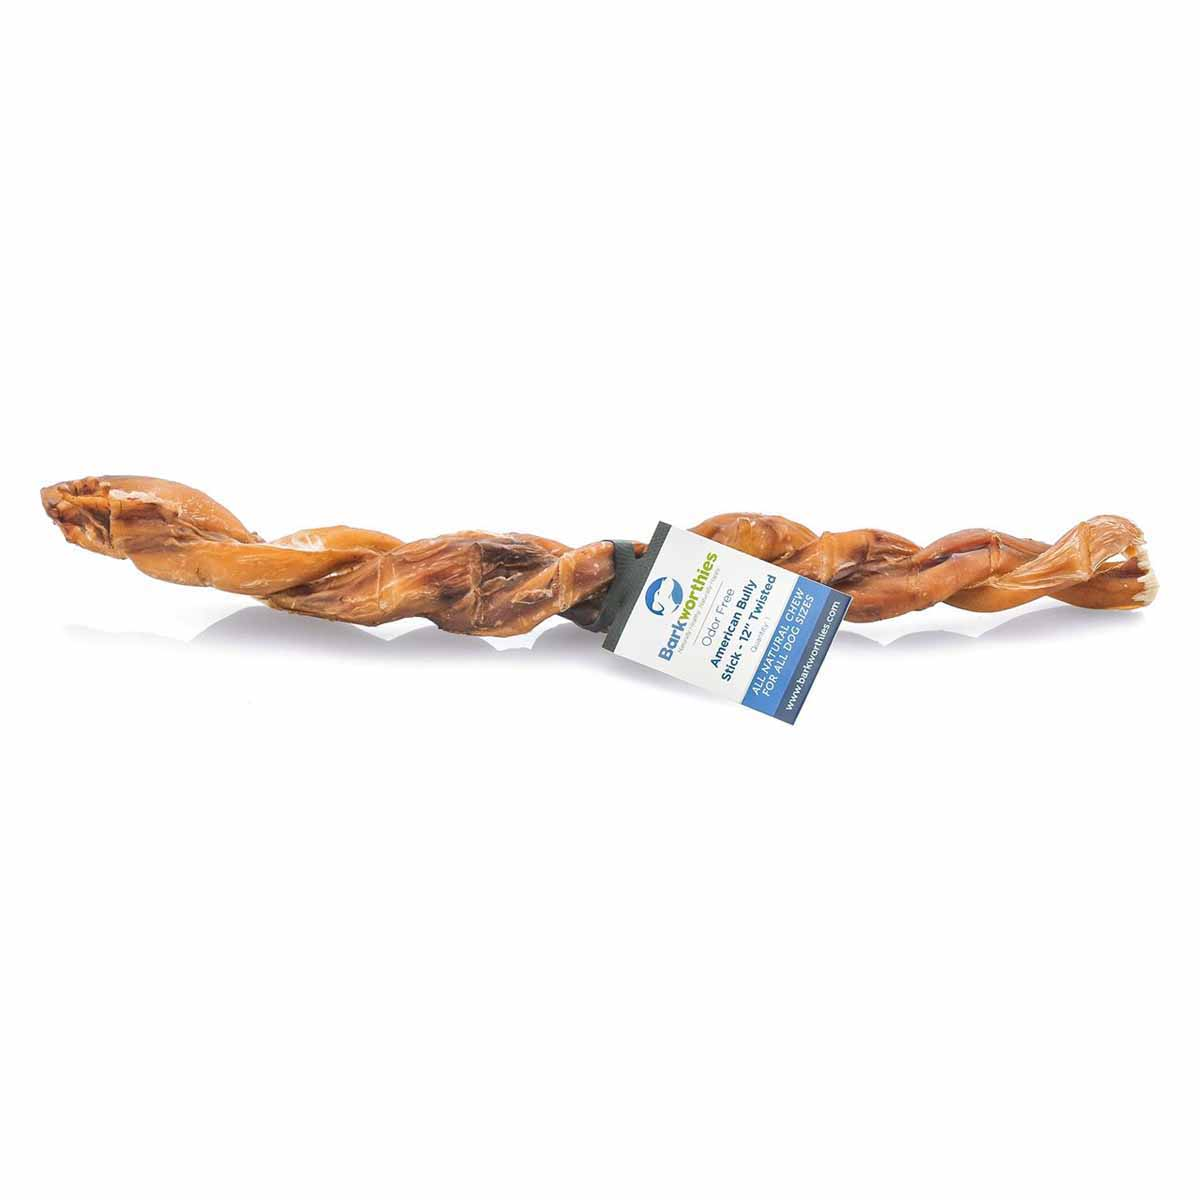 barkworthies all natural odor free american twisted bully stick baxterboo. Black Bedroom Furniture Sets. Home Design Ideas